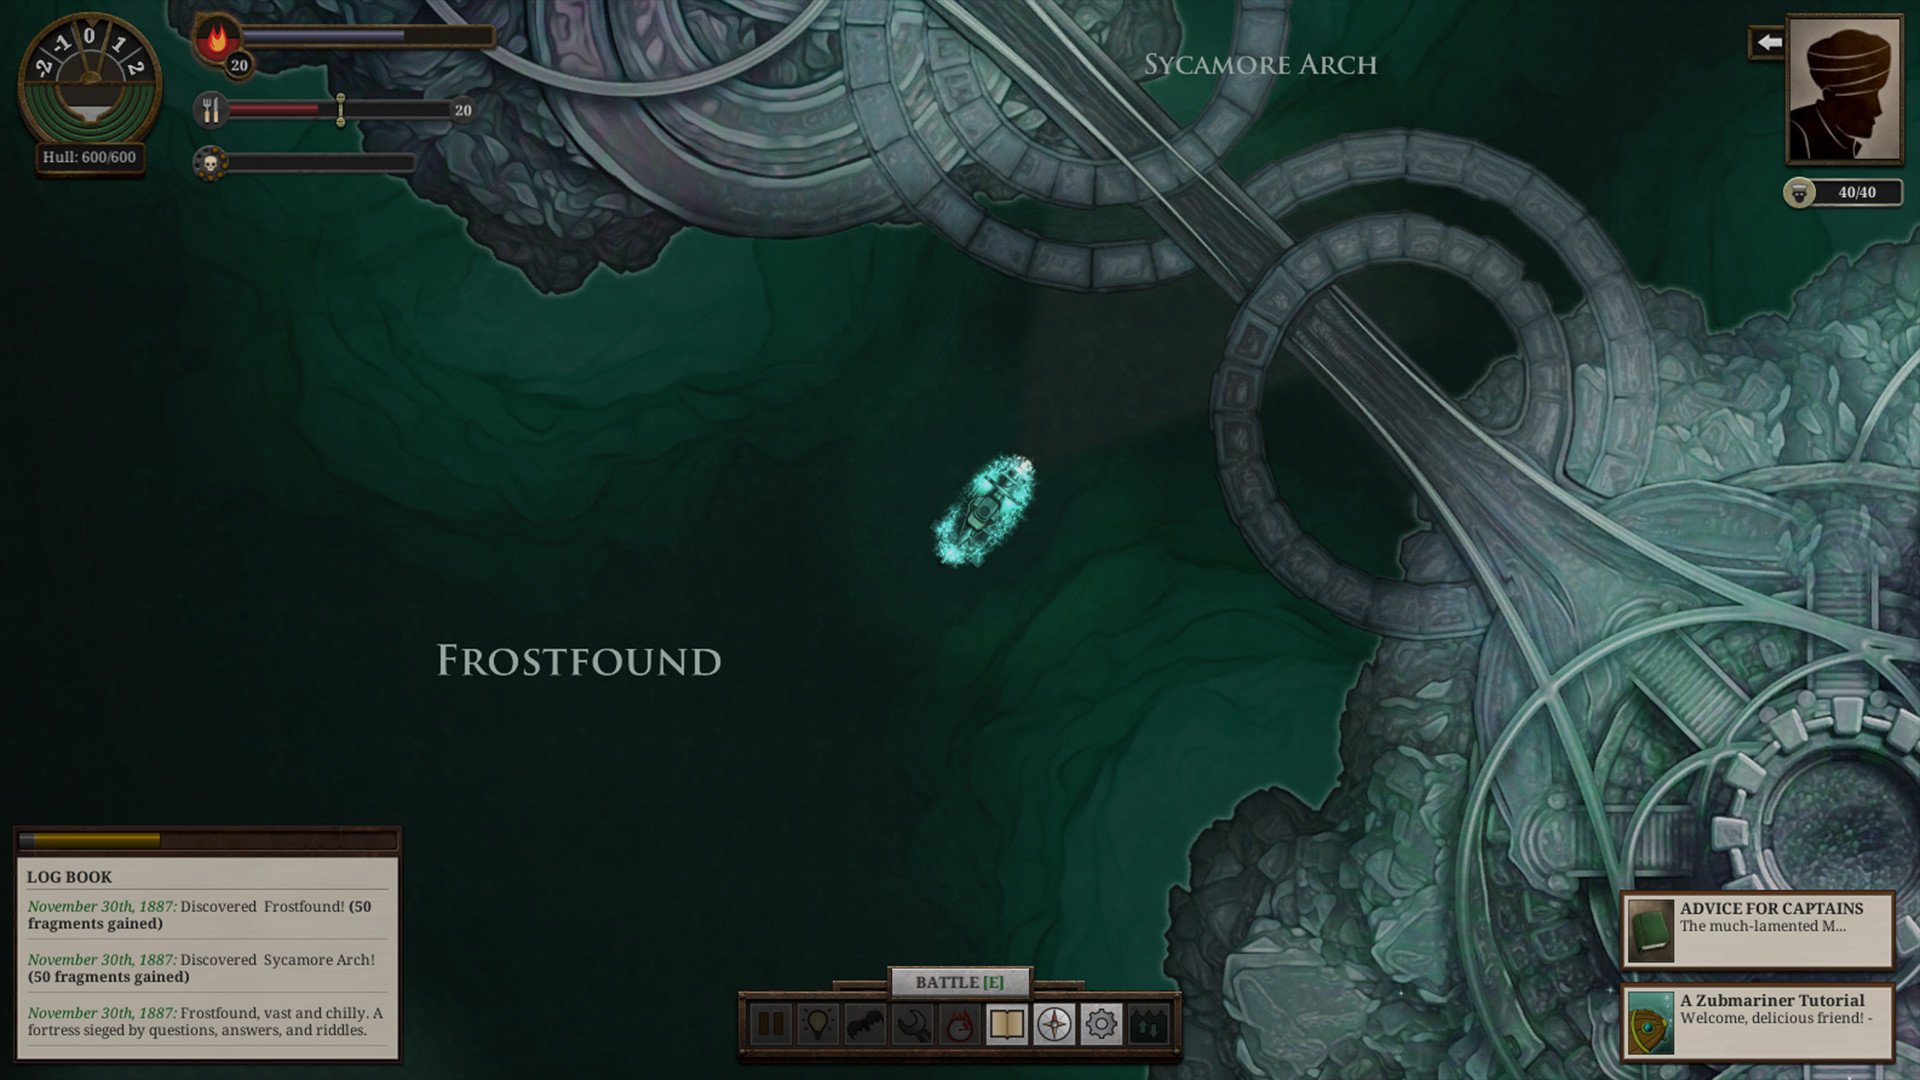 Sunless Sea - Zubmariner screenshot